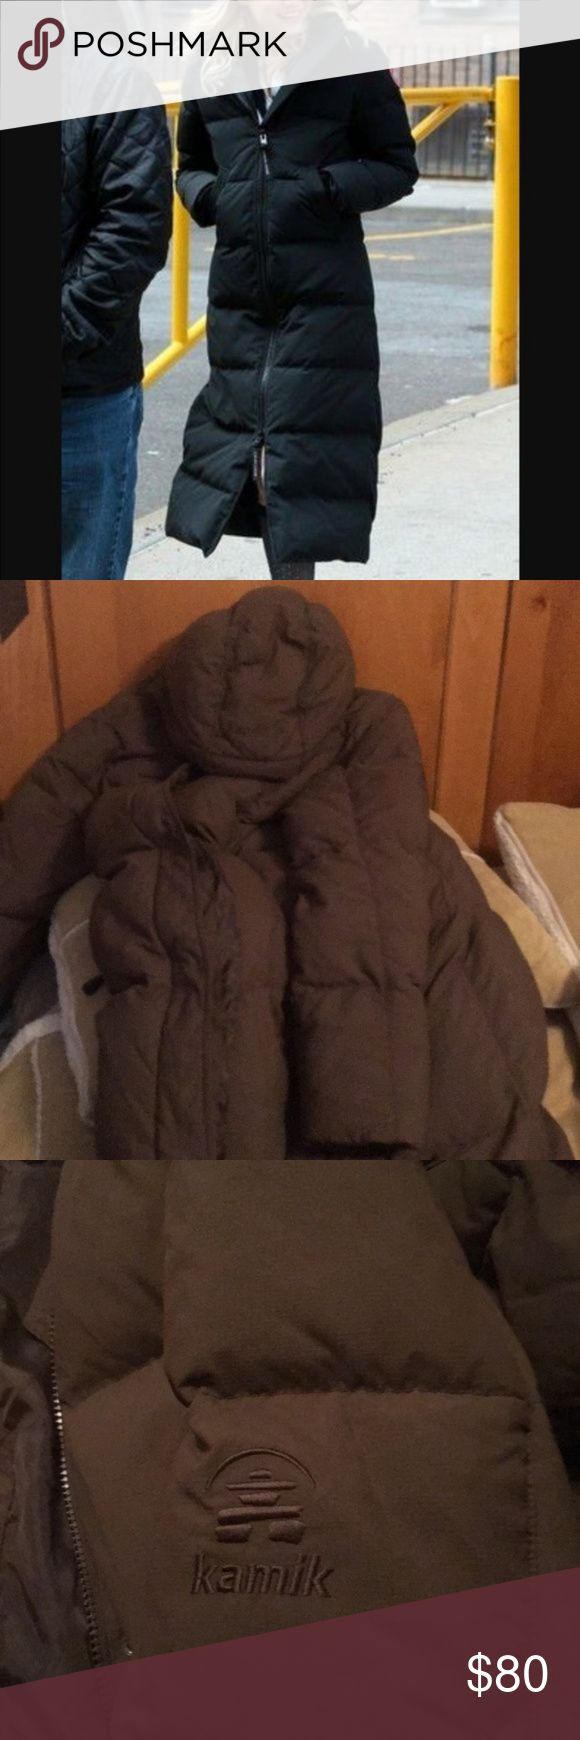 Kamik 100% Goose down maxi coat Chocolate brown full length long down coat. This is in perfect condition, only worn a couple times, flawless. Not 60/40, but 100% duck feathers with heavy quality lining and exterior with detachable hood. Kamik is similar in quality to the Canada goose down, North Face and Marmot. Kamik Jackets & Coats Puffers